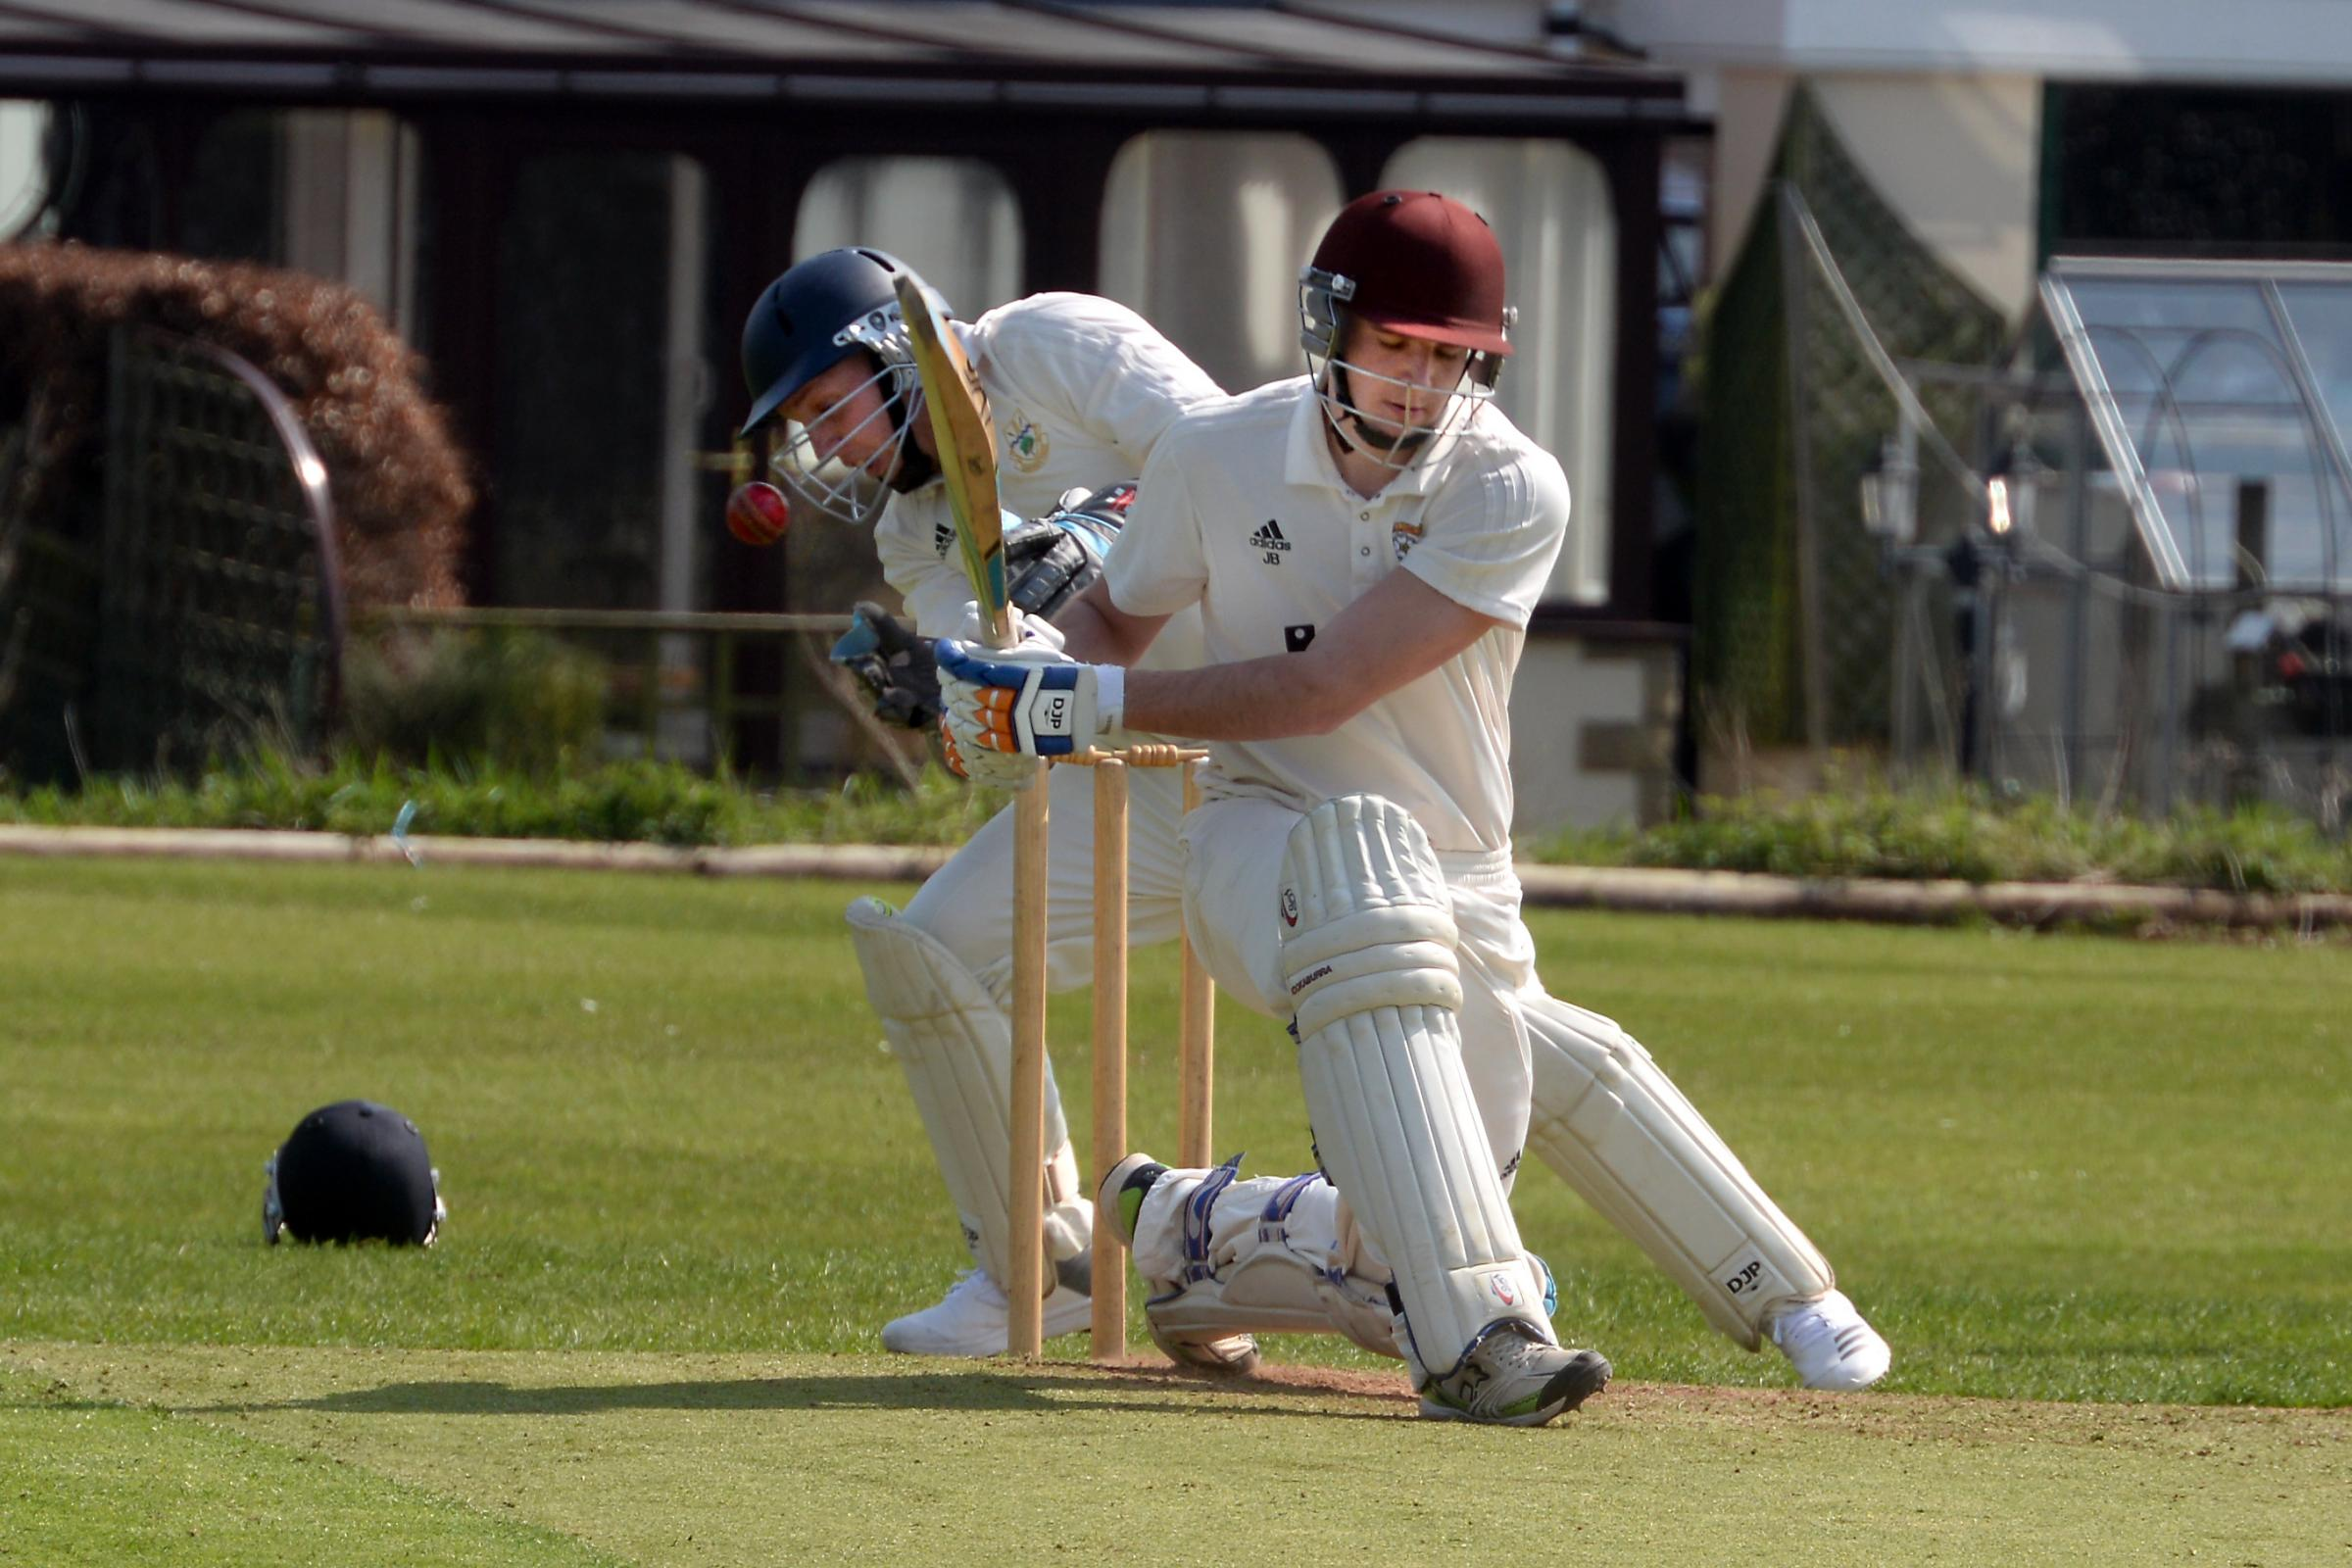 Barnoldswick's captain Johnny Beech batting